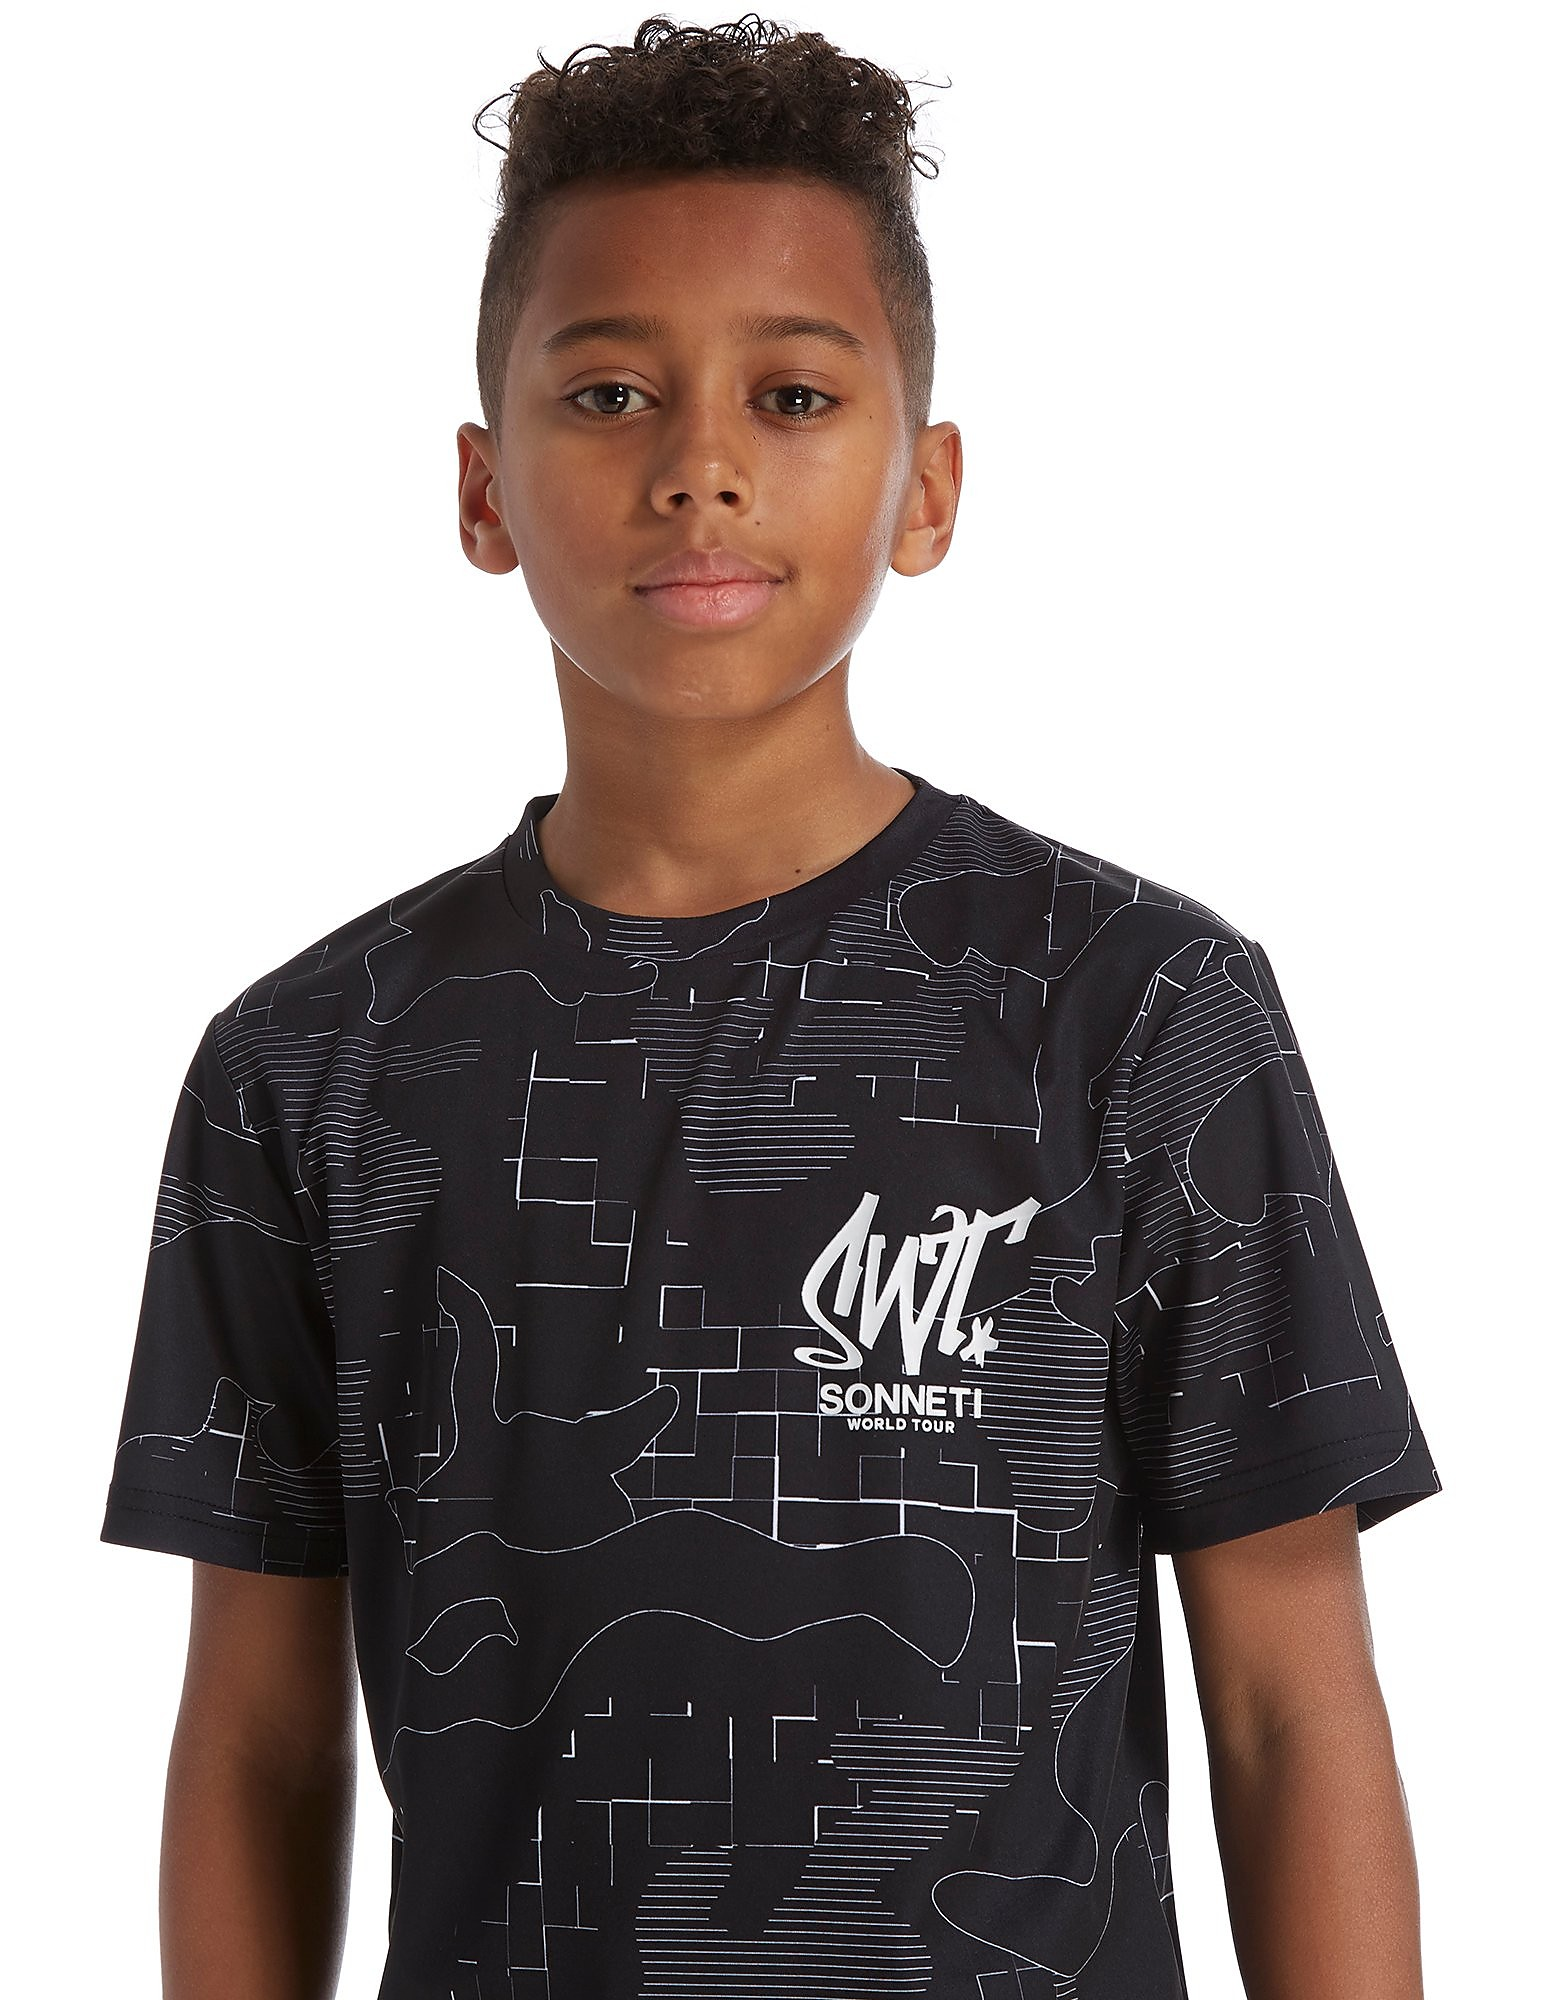 Sonneti T-shirt Lined Camo Junior